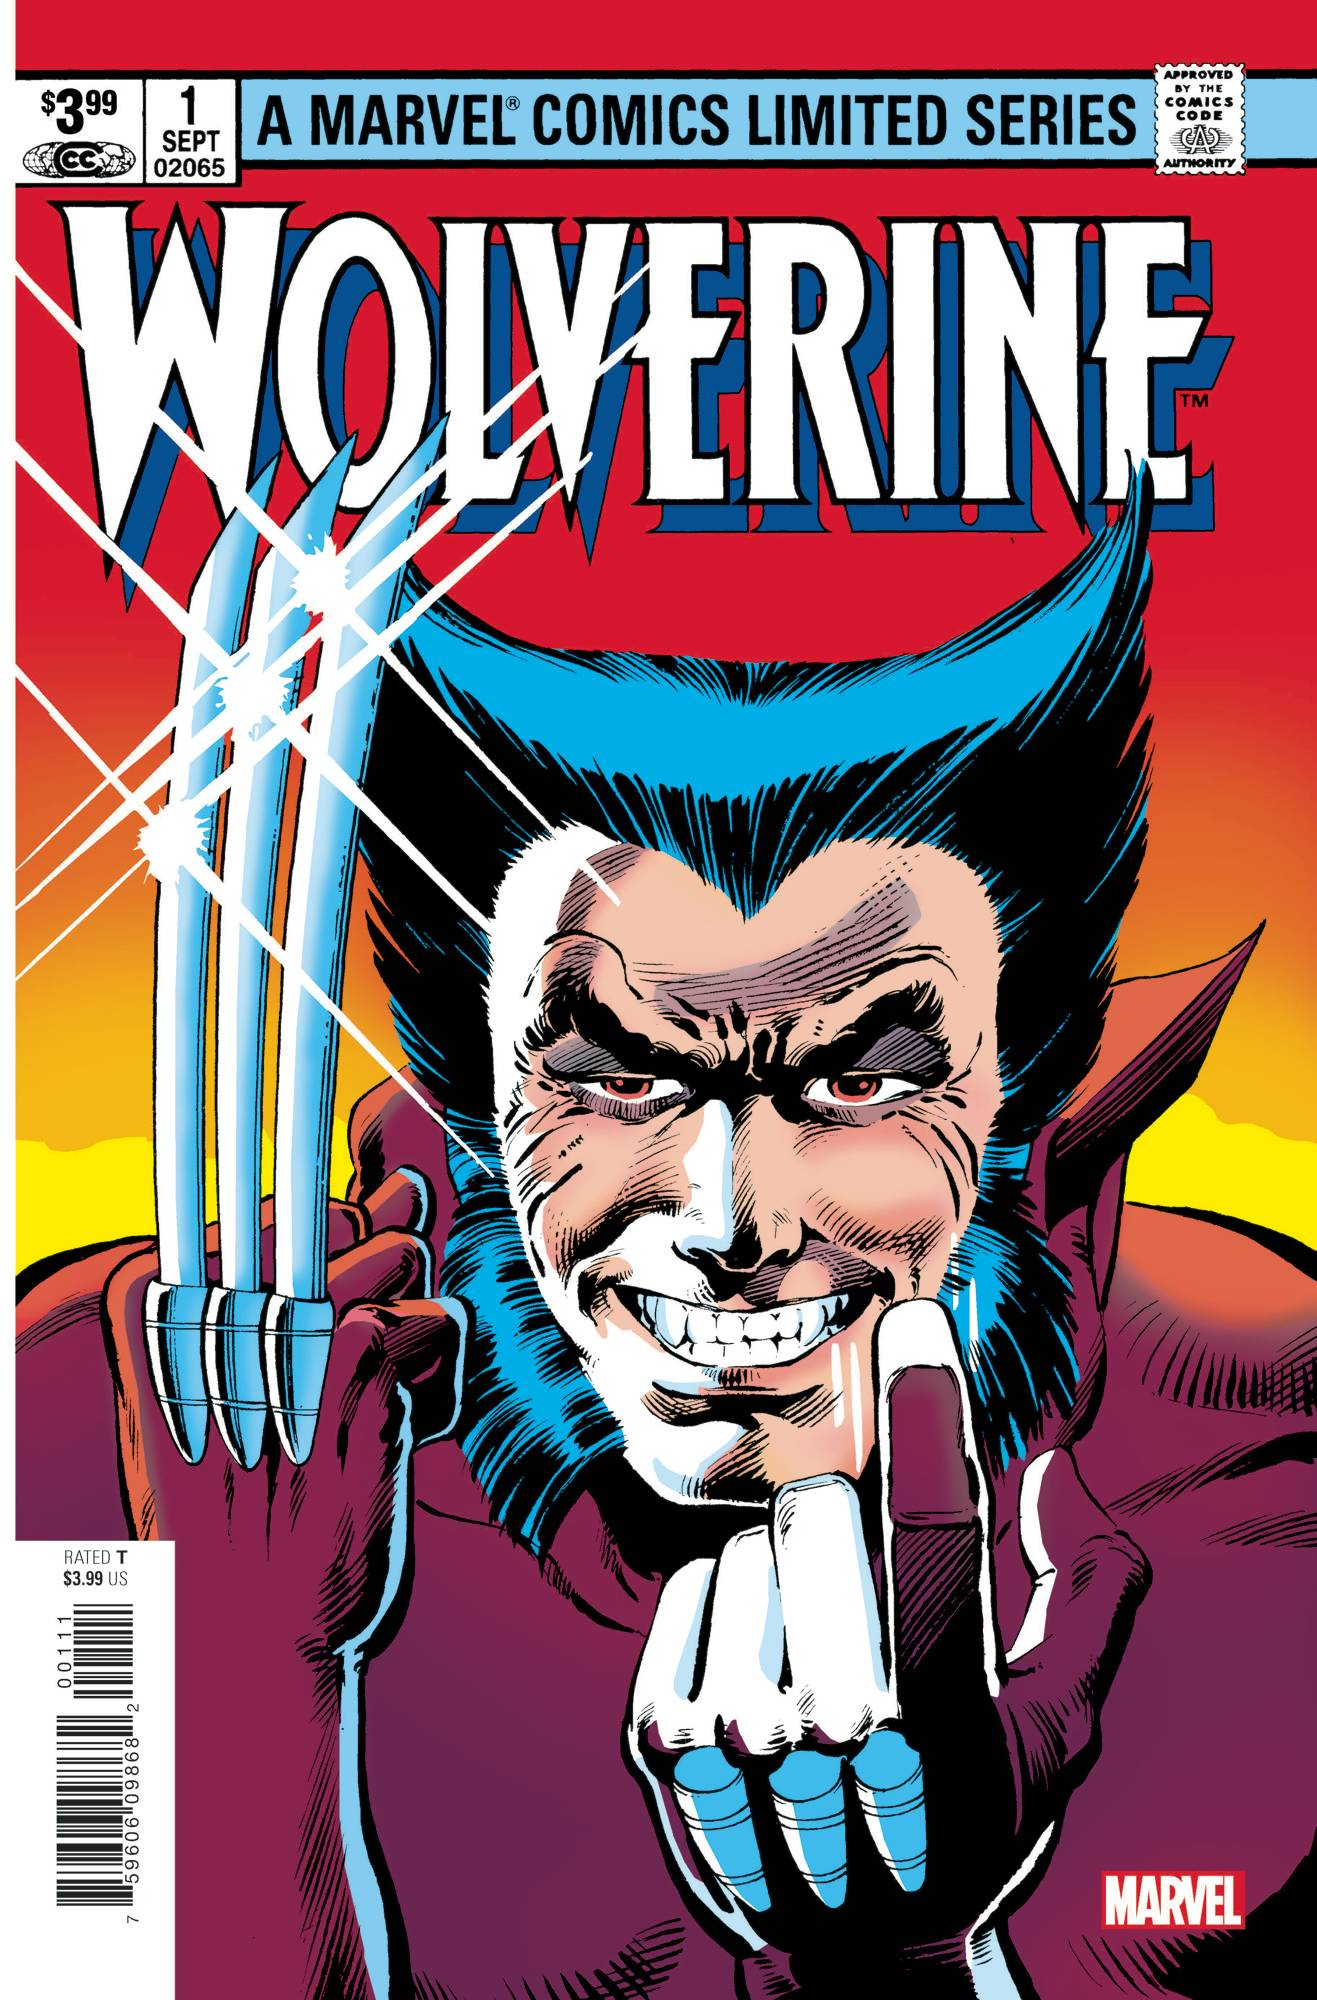 Wolverine #1 by Claremont & Miller Facsimile Edtion